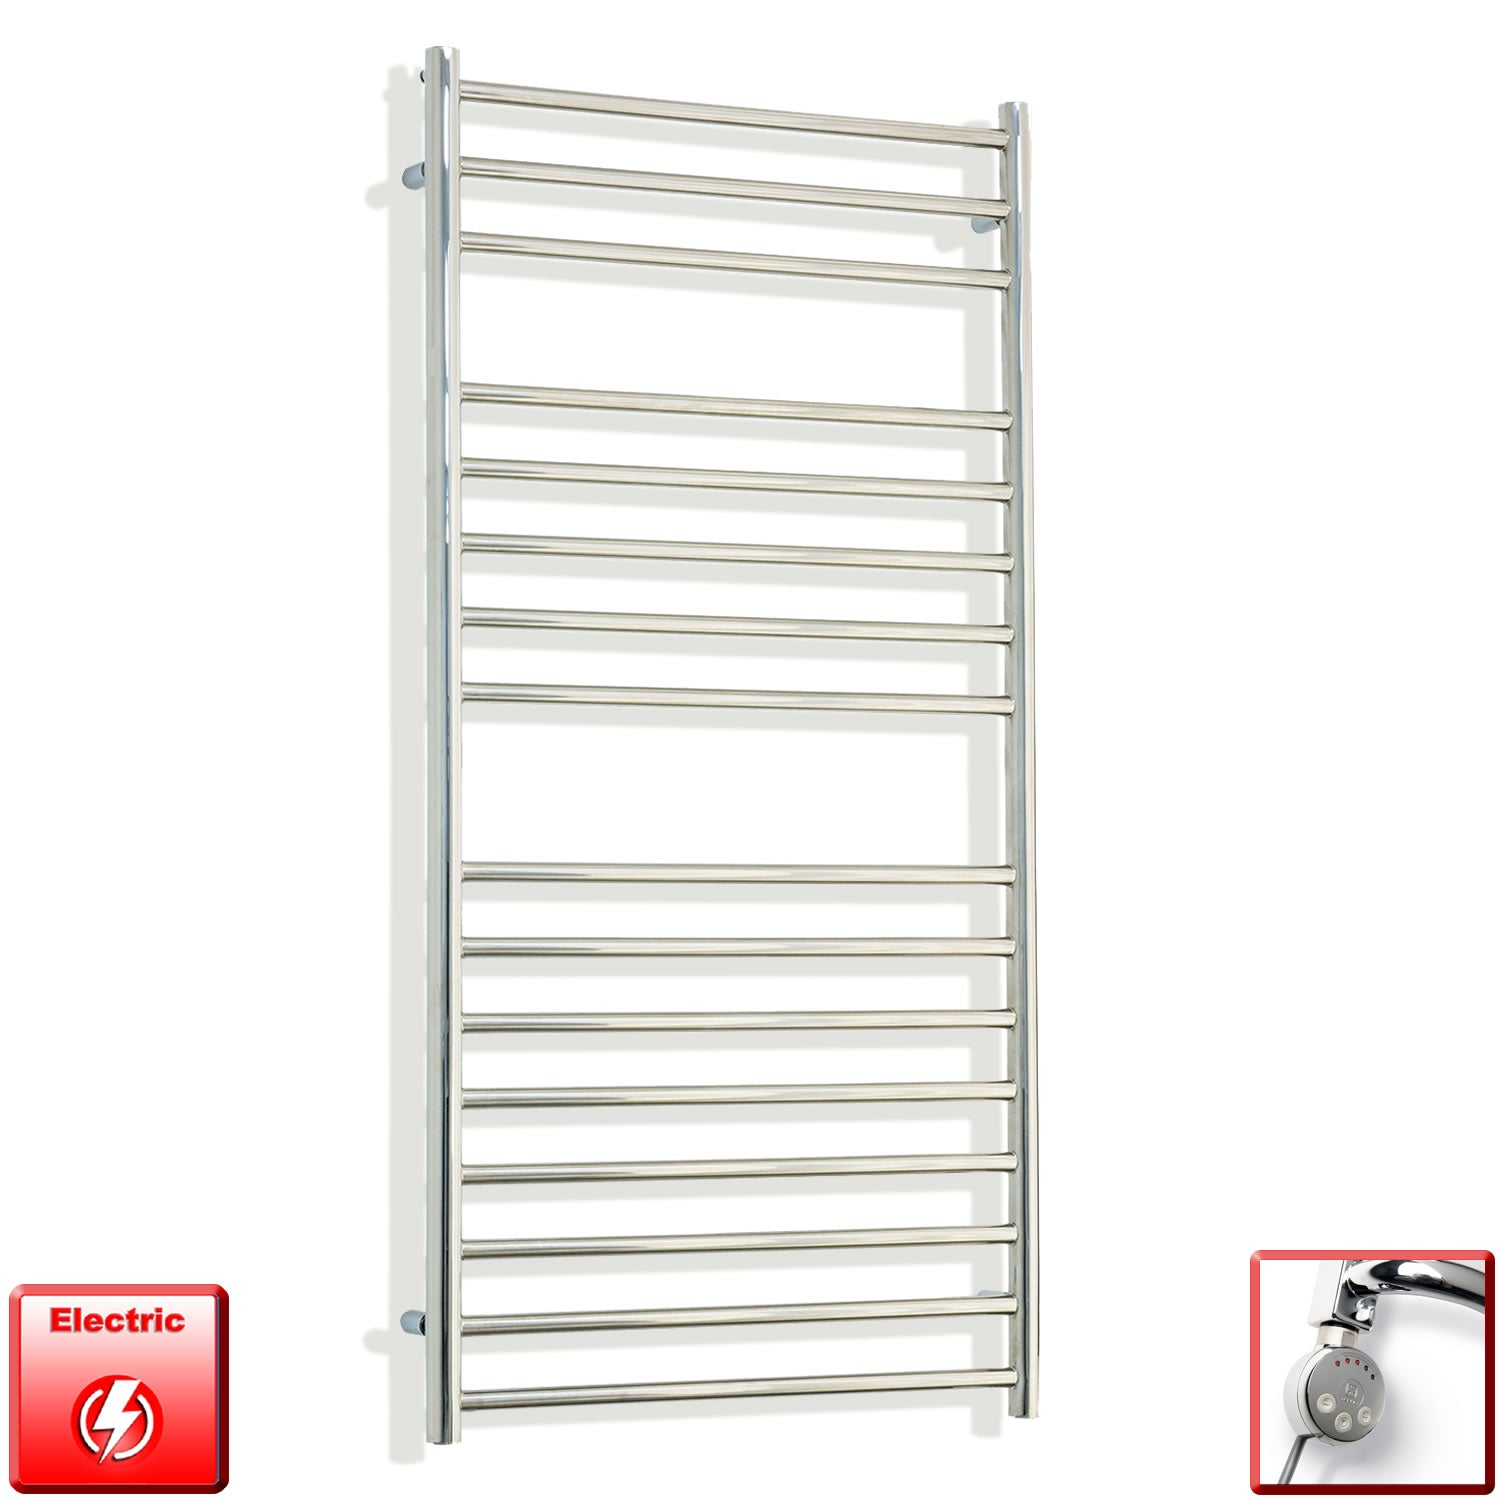 1200 mm High 600 mm Wide Pre-Filled Electric Stainless Steel Heated Towel Rail Radiator meg thermostatic heating element